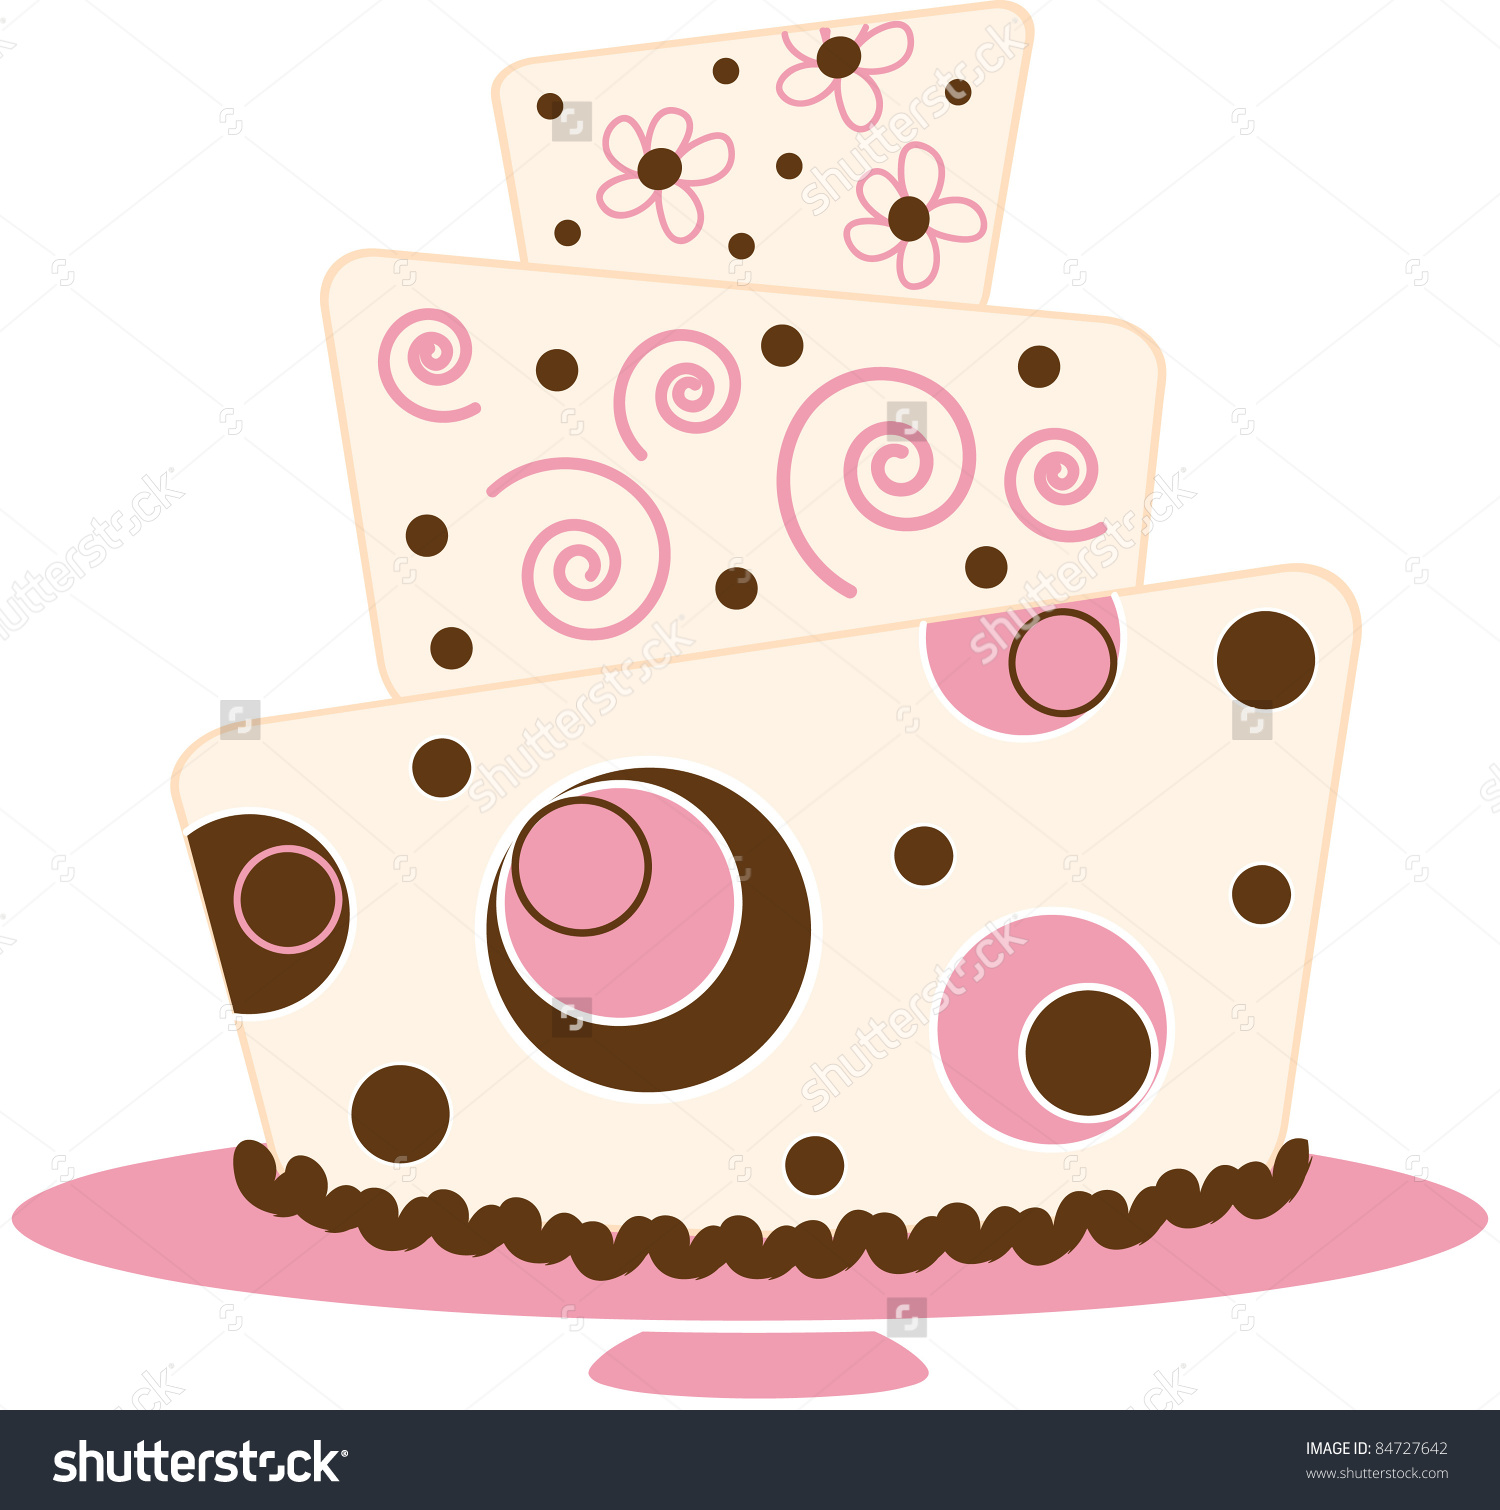 Frosting clipart layered cake Layer art Stock Layer Illustration